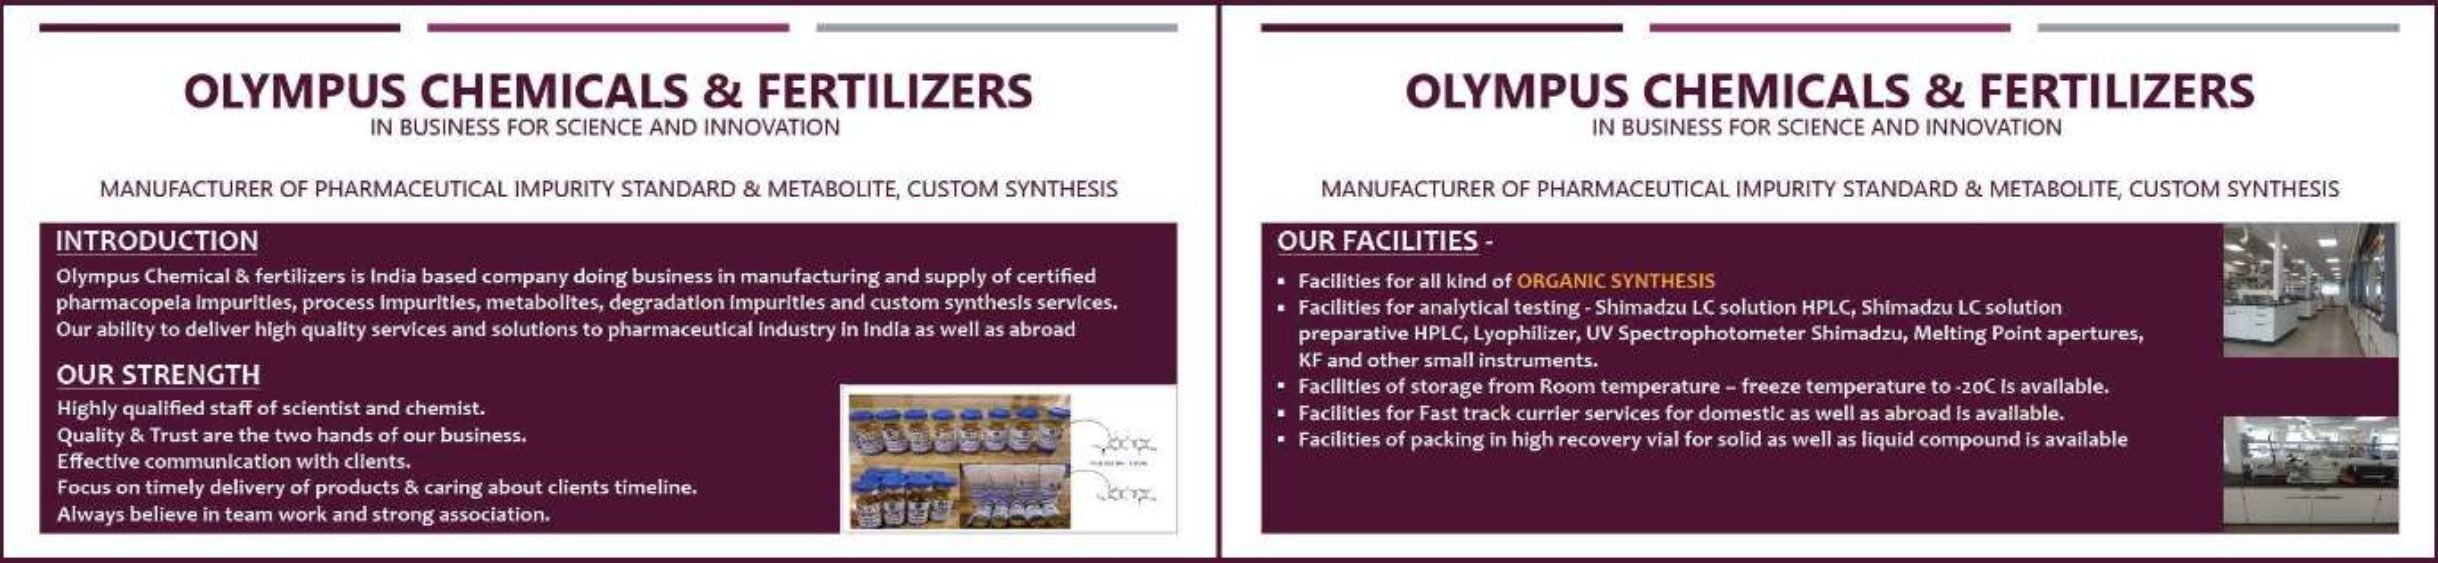 impurities-standard-supplier-olympus-chemicals-and-fertilizers-1